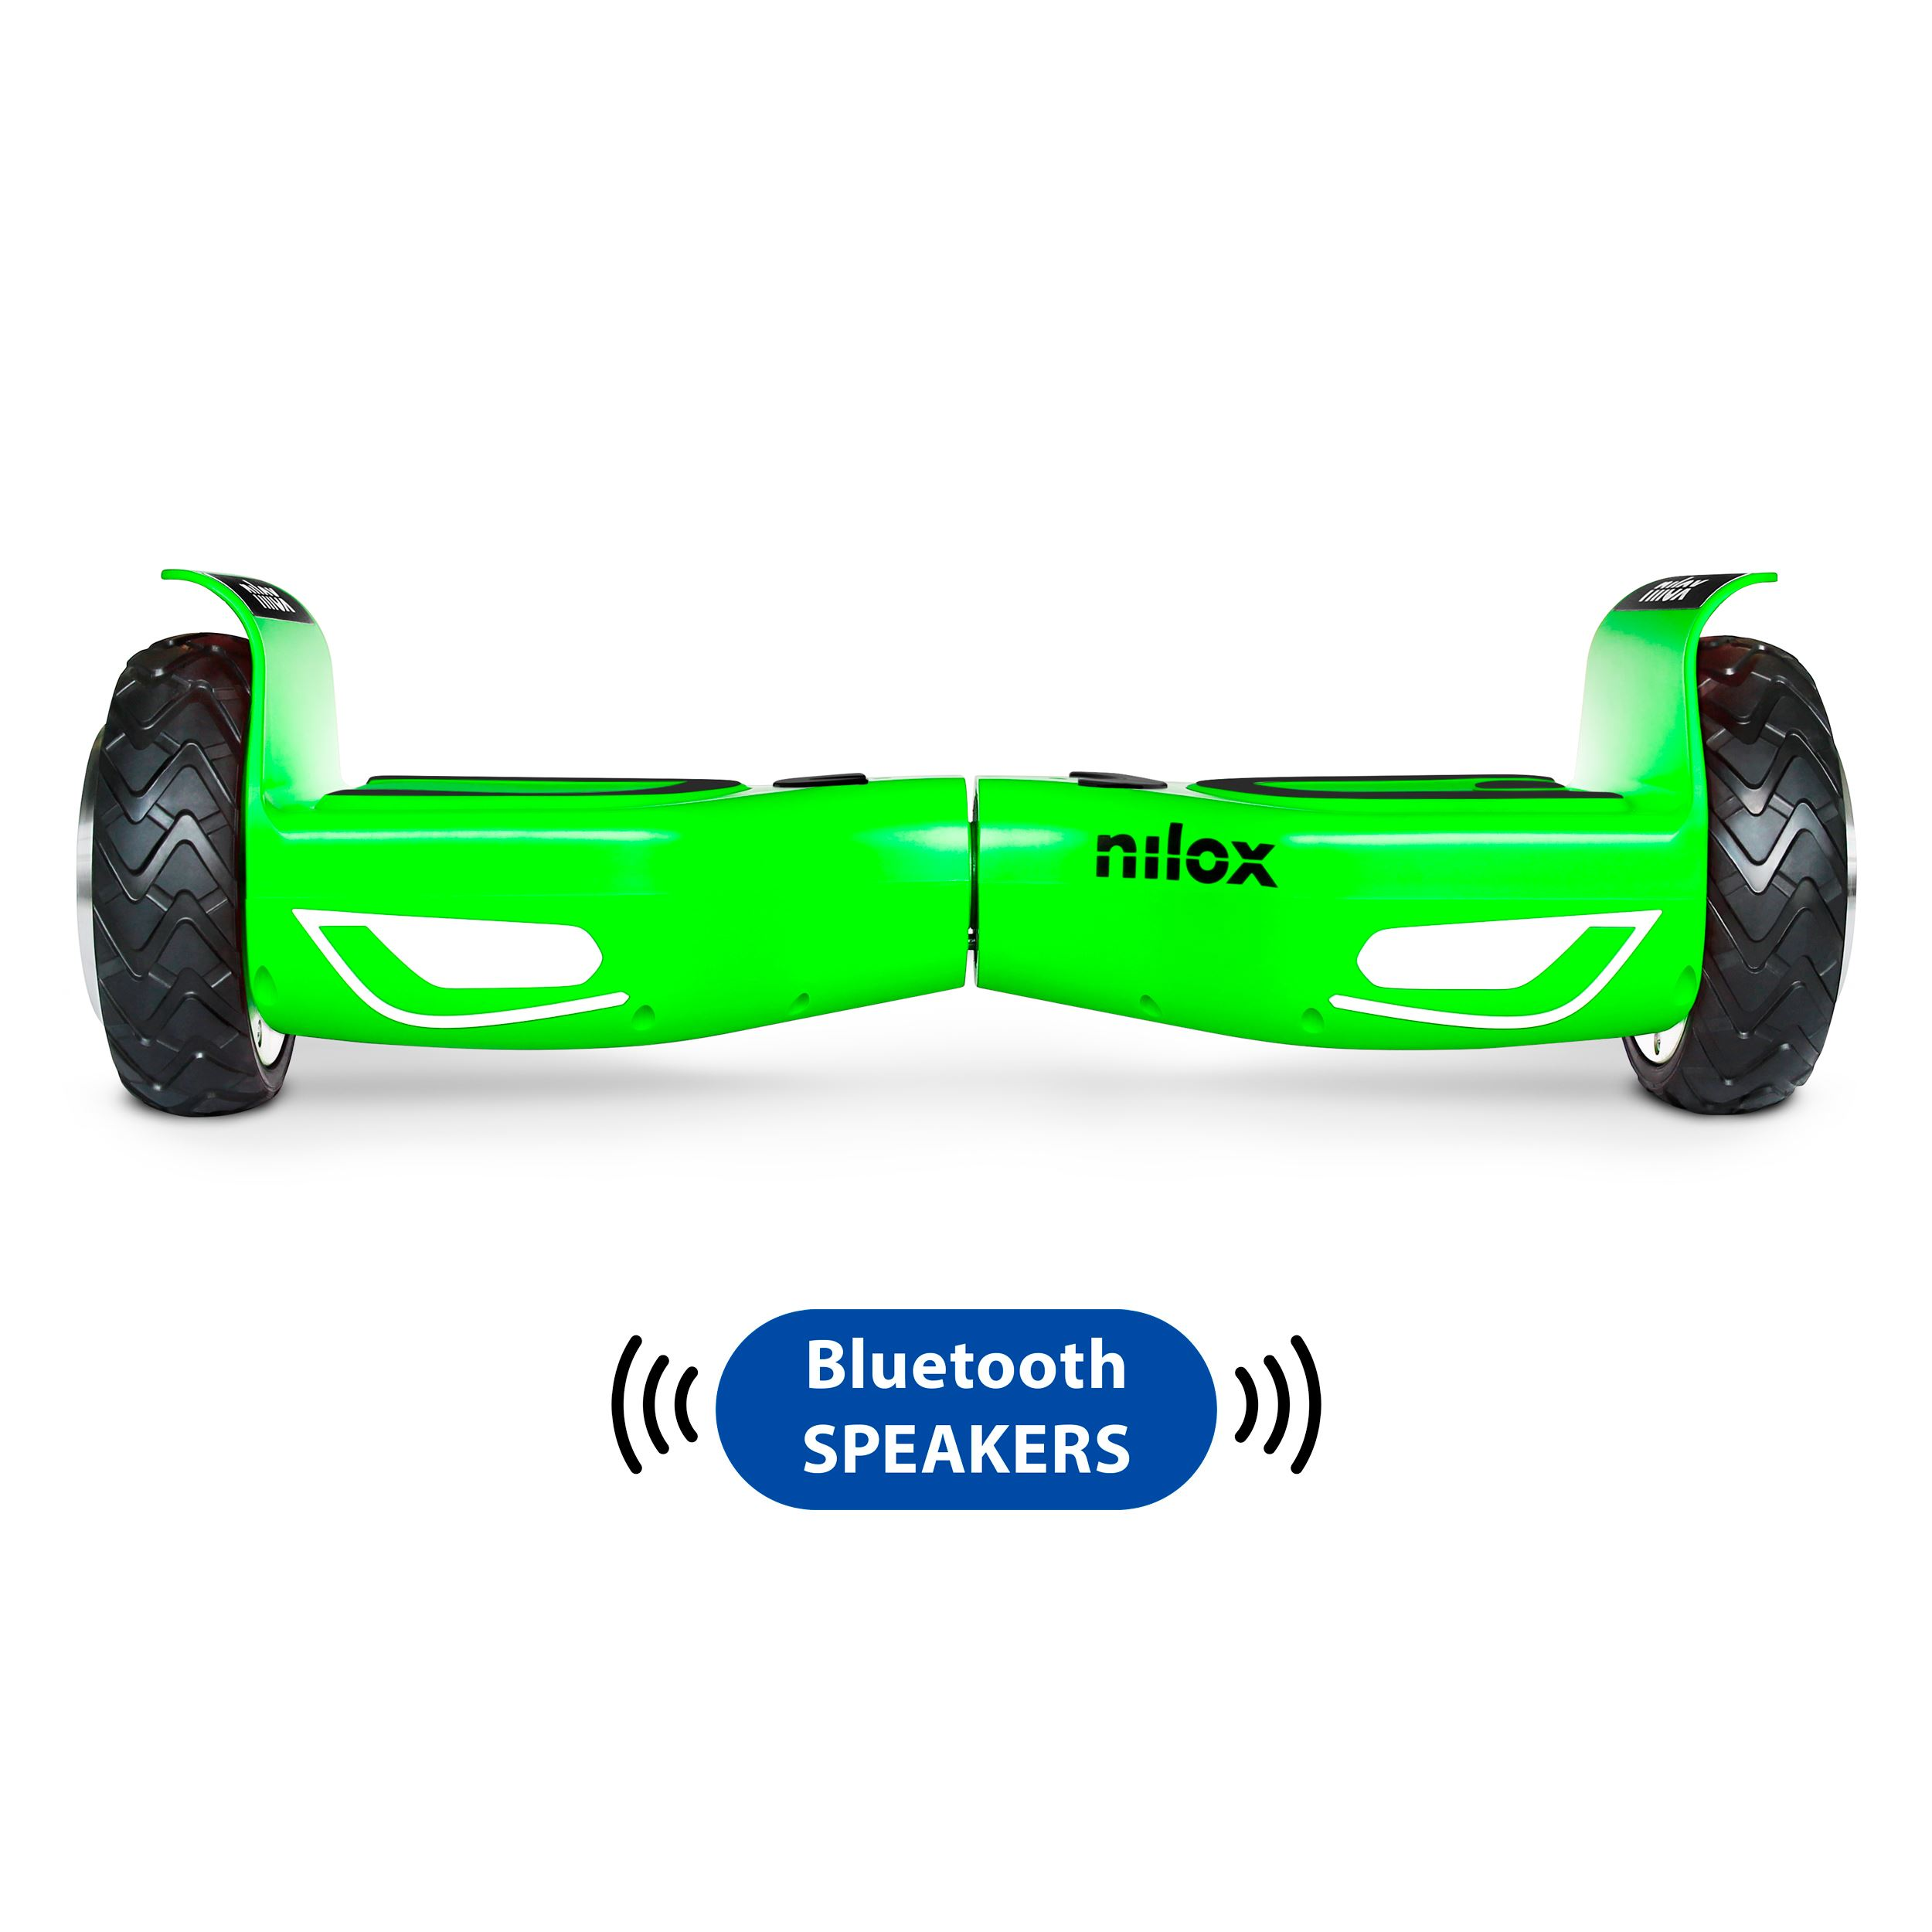 doc-2-hoverboard-plus-lime-green-30nxbk65bwn06-505309-hd.jpg